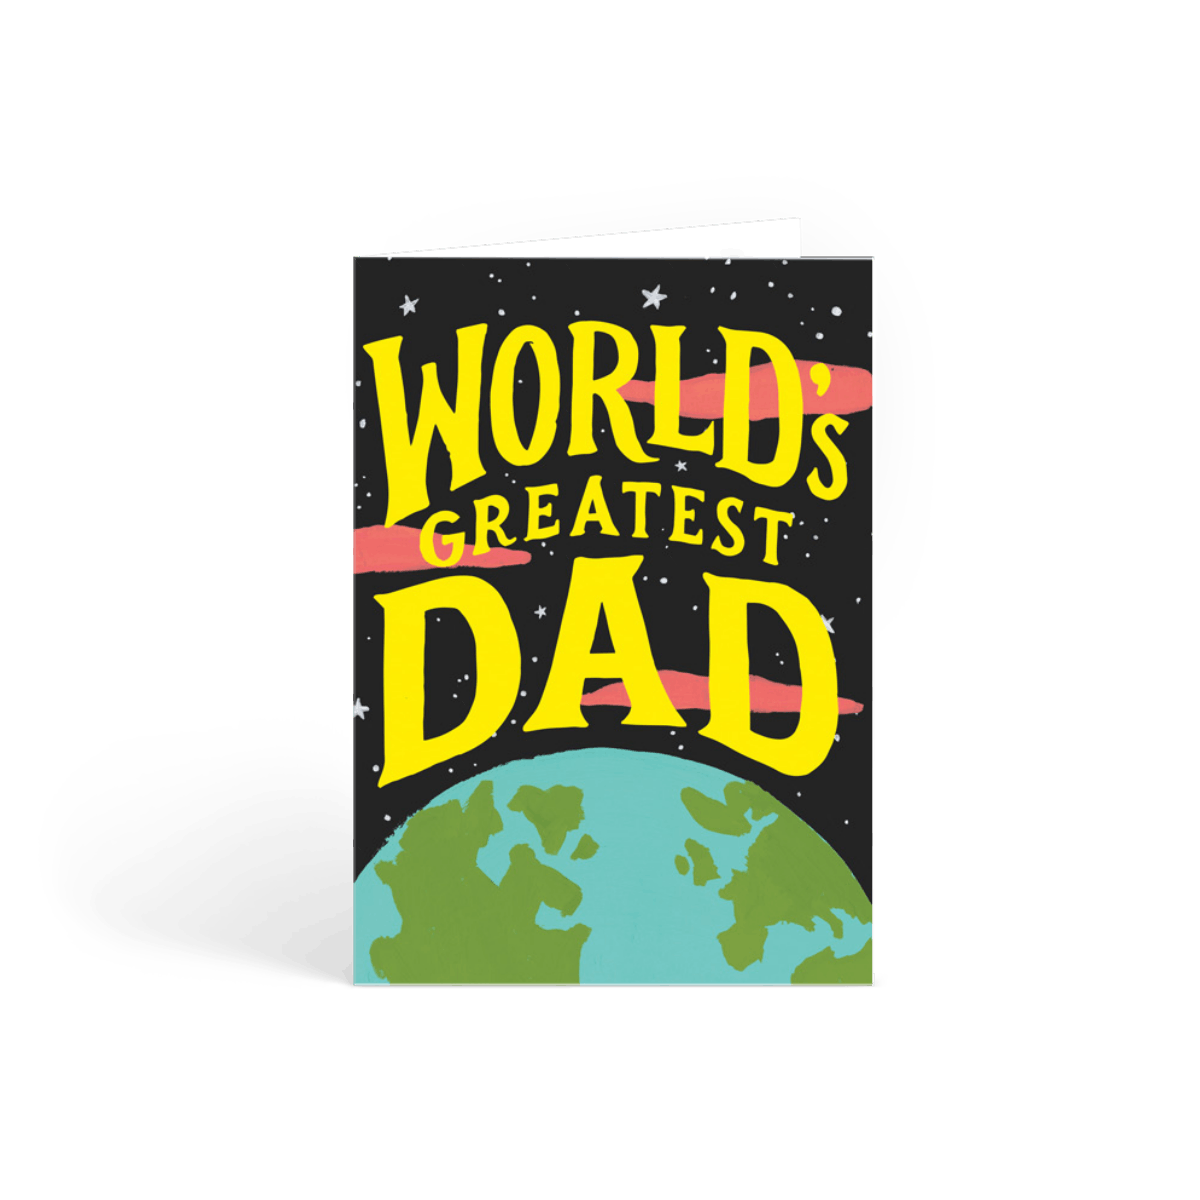 Https%3a%2f%2fwww.papier.com%2fproduct image%2f74667%2f2%2fworlds greatest dad 17509 front 1556878873.png?ixlib=rb 1.1